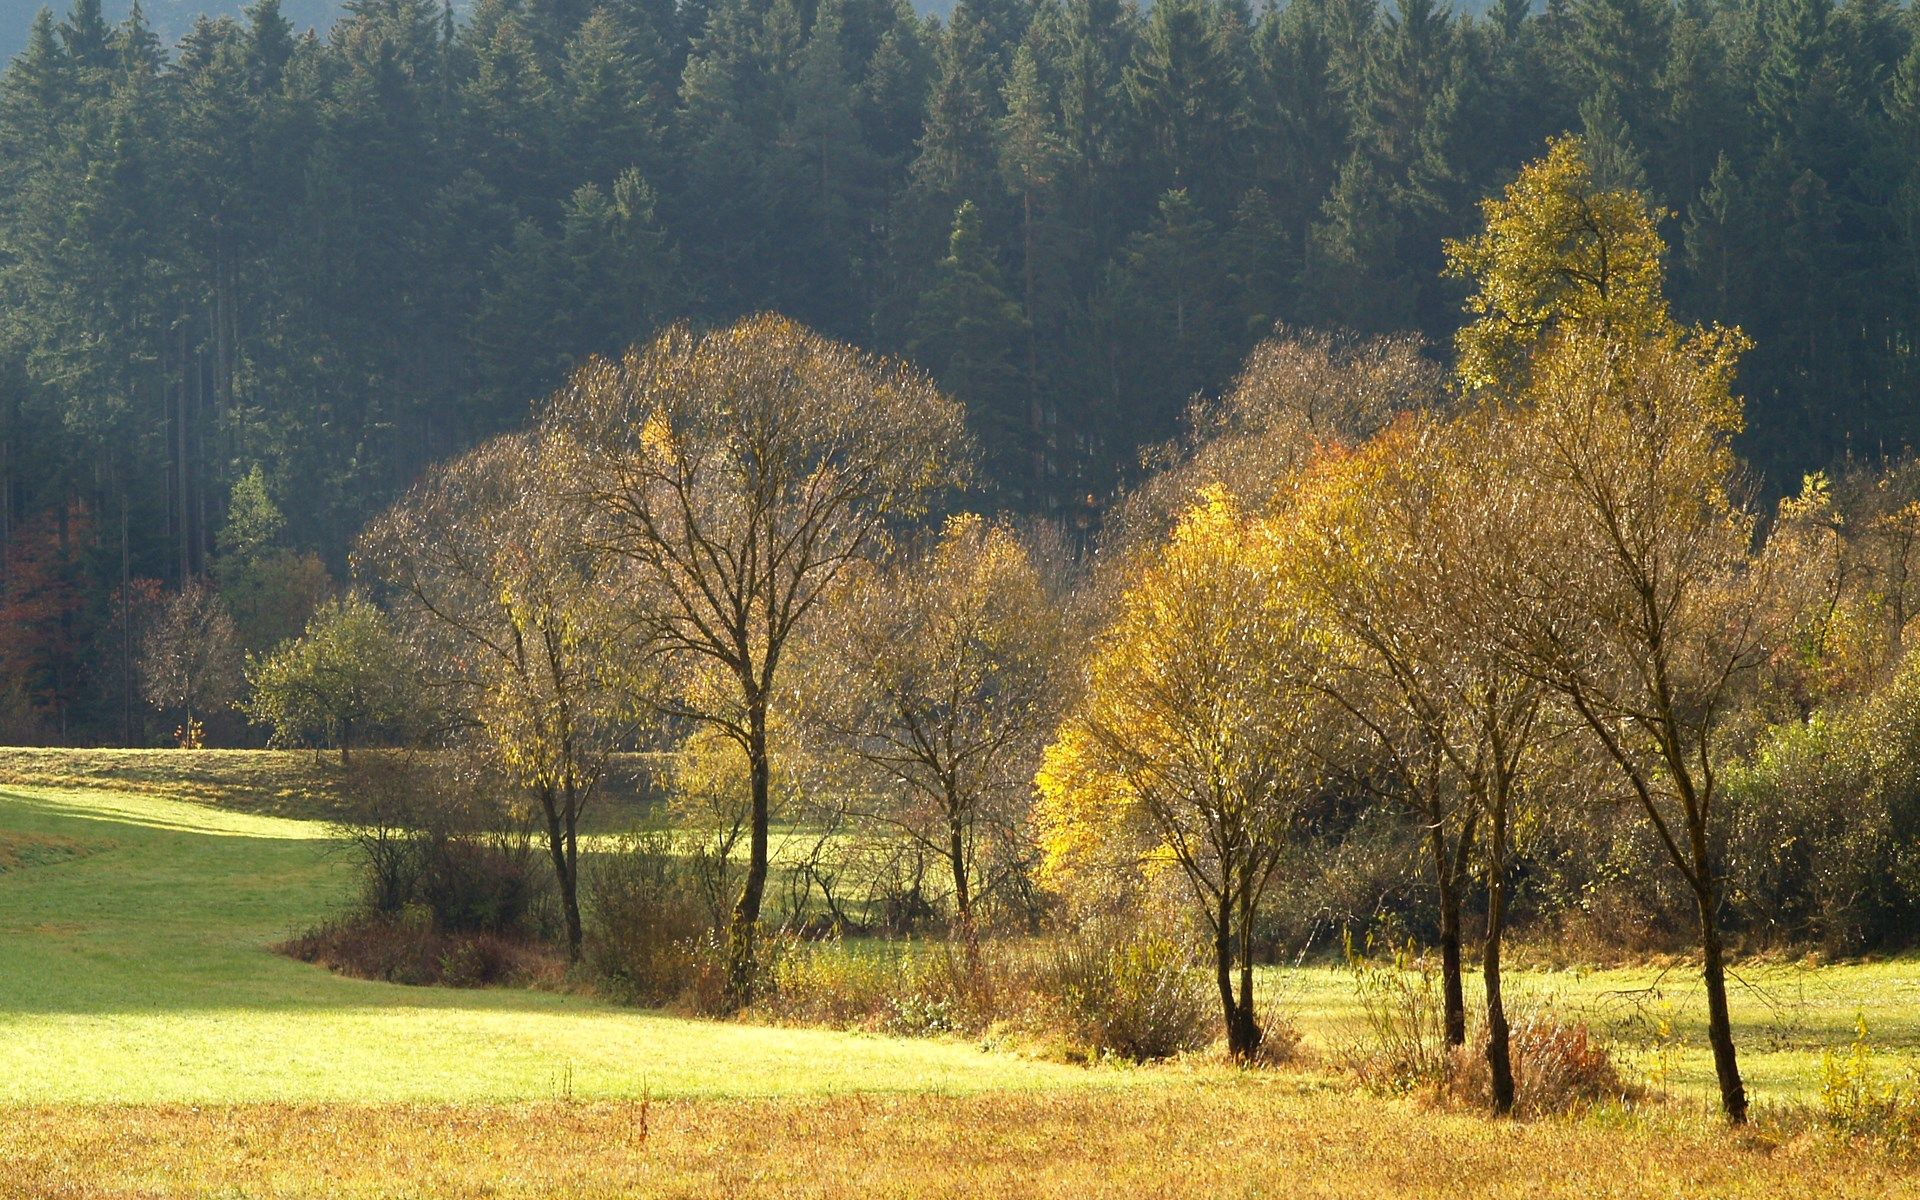 Fall Free Hd Widescreen Fall Scenery Pictures Autumn Forest Field Wallpaper Autumn grass field mountain forest trees